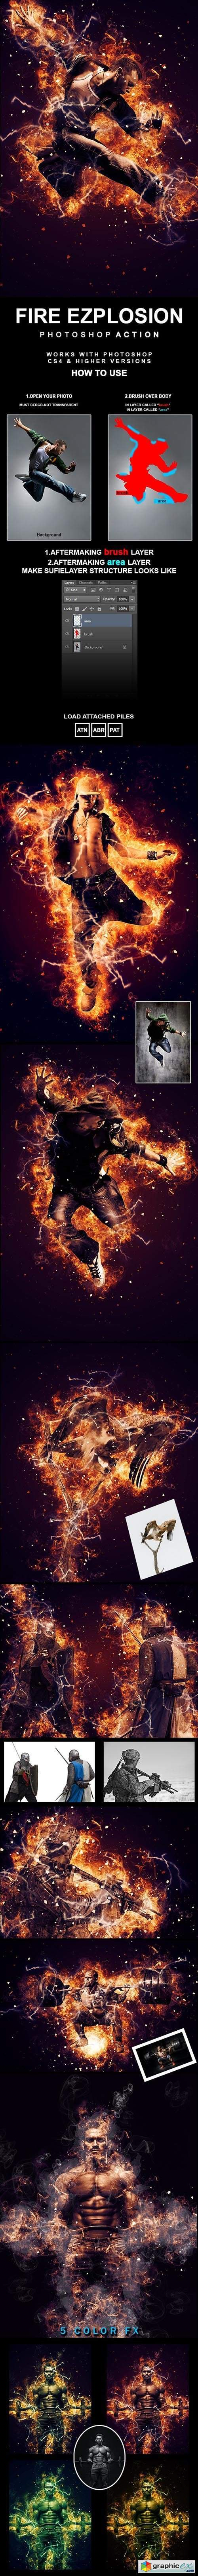 Fire Explosion Photoshop Action